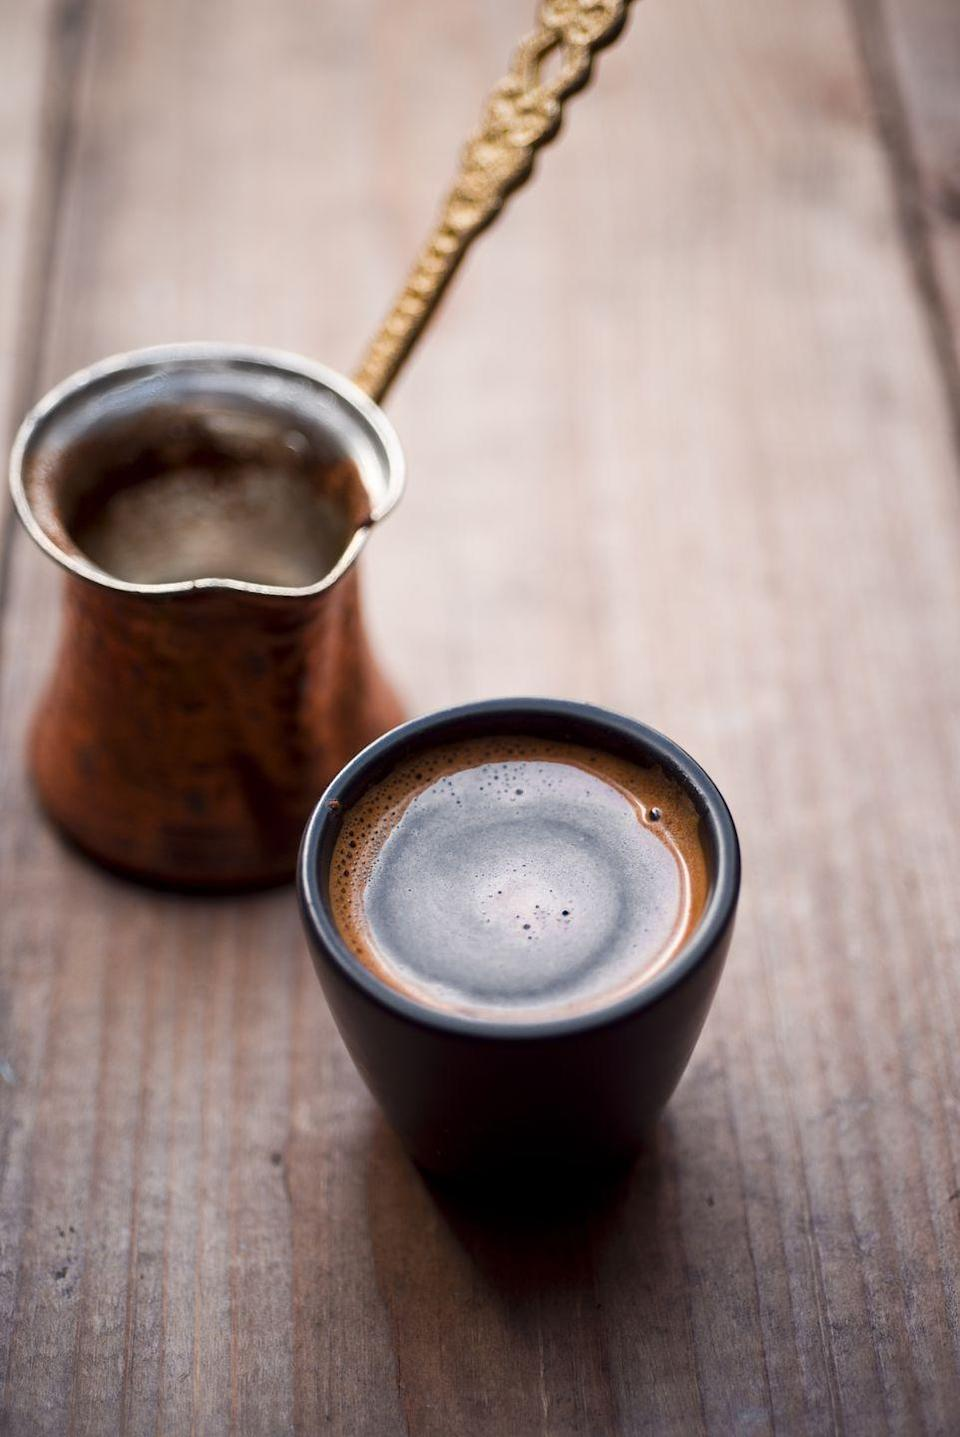 "<p>Although it has different names and variations throughout North Africa, Eastern Europe and the Middle East, Turkish coffee is typically prepared unfiltered with extra finely ground coffee and ground cardamom. This warm, spiced coffee is a great alternative to syrup-flavored drinks in the autumn and winter. </p><p><strong>Pro tip: </strong>The grounds and water are traditionally heated in an ibrik, but the recipe can be adapted to suit a saucepan.</p><p><em><a href=""https://go.redirectingat.com?id=74968X1596630&url=https%3A%2F%2Fwww.illy.com%2Fen-us%2Fcoffee%2Fcoffee-preparation%2Fhow-to-make-turkish-coffee&sref=https%3A%2F%2Fwww.goodhousekeeping.com%2Ffood-recipes%2Fg35012036%2Fbest-coffee-recipes%2F"" rel=""nofollow noopener"" target=""_blank"" data-ylk=""slk:Get the recipe for Turkish Coffee from Illy »"" class=""link rapid-noclick-resp"">Get the recipe for Turkish Coffee from Illy » </a></em></p>"